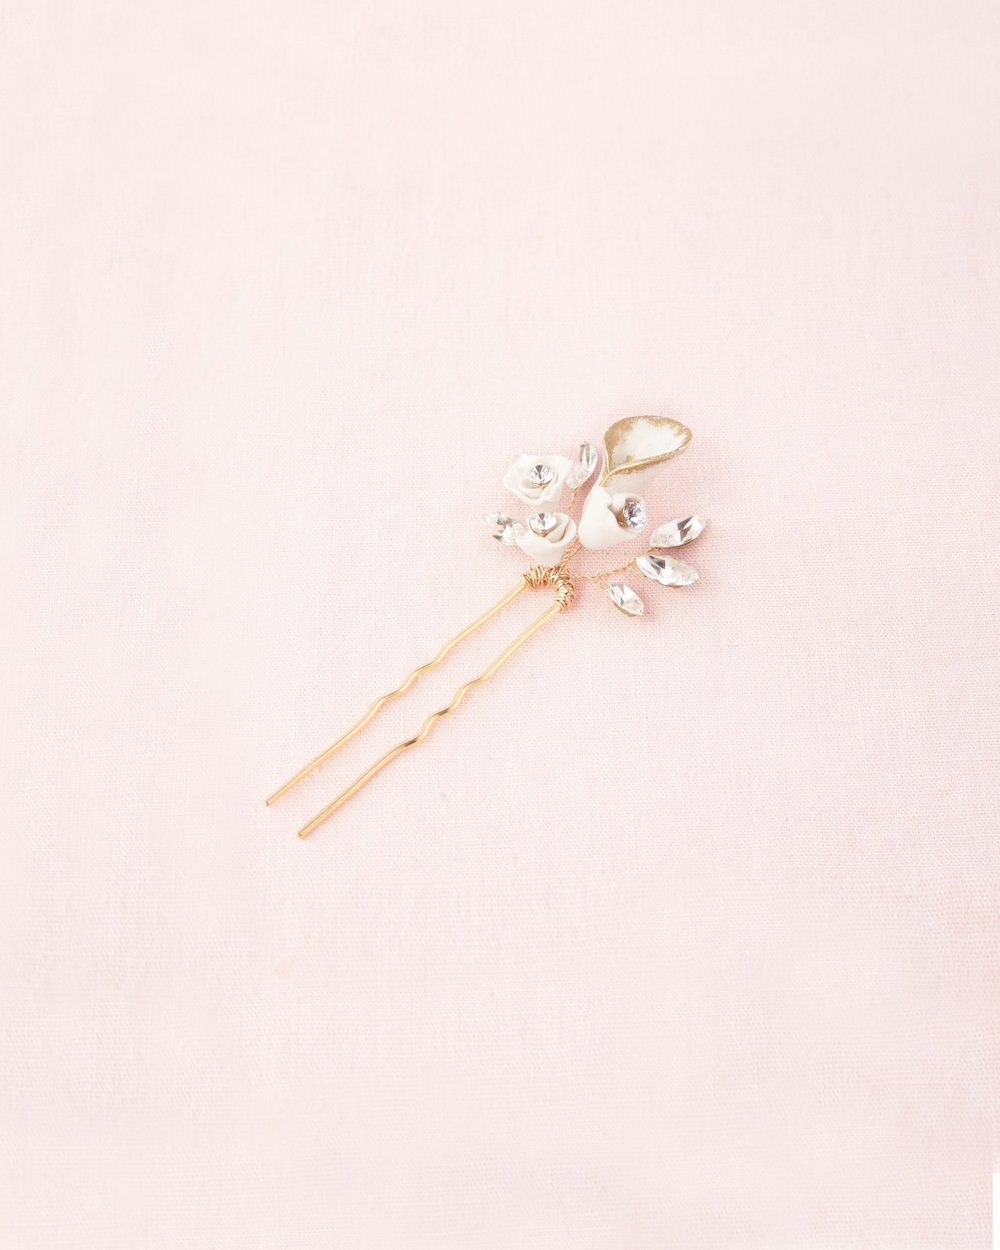 gilded-lily-hair-pin-cream-gold-1-atelier-elise-2400-web_2048x.jpg